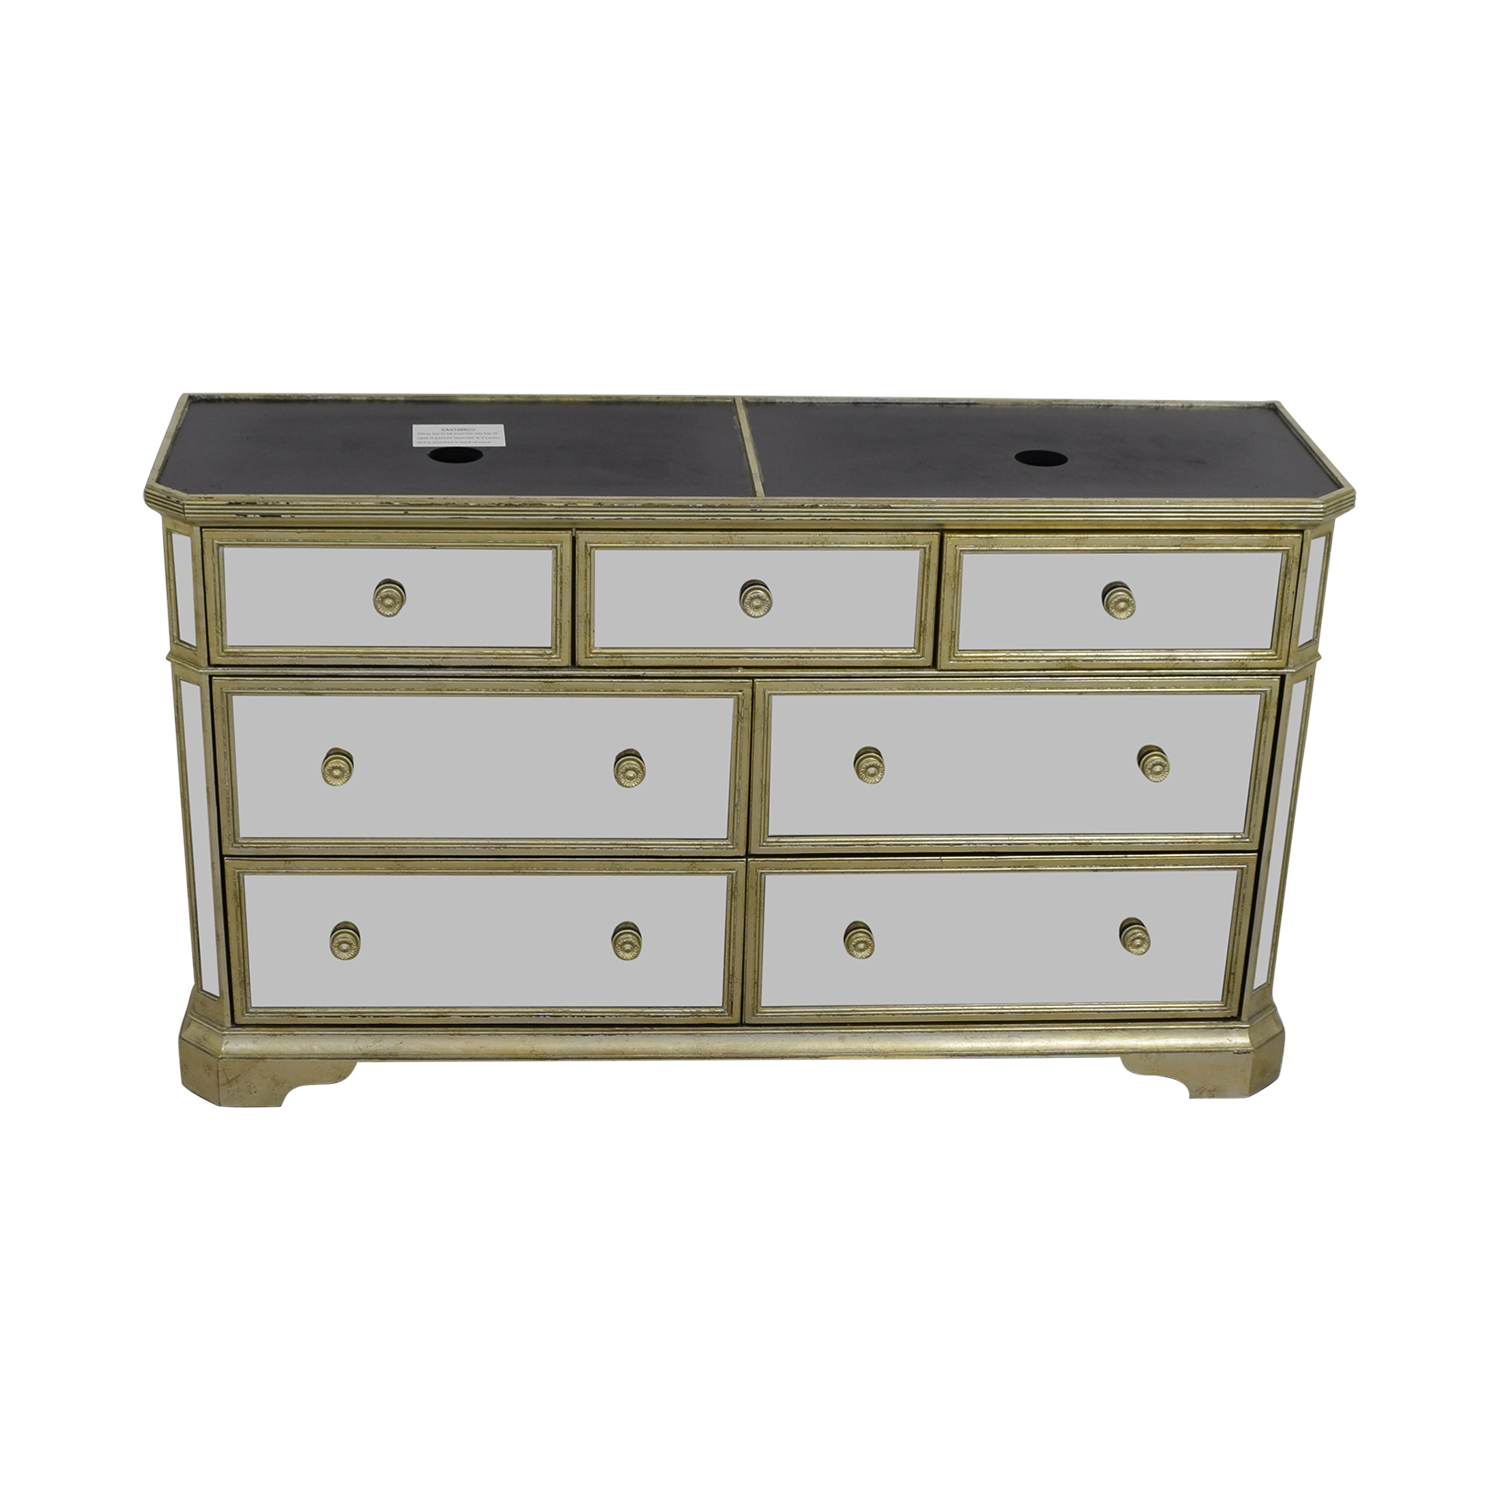 Marais Seven-Drawer Mirrored Dresser / Storage